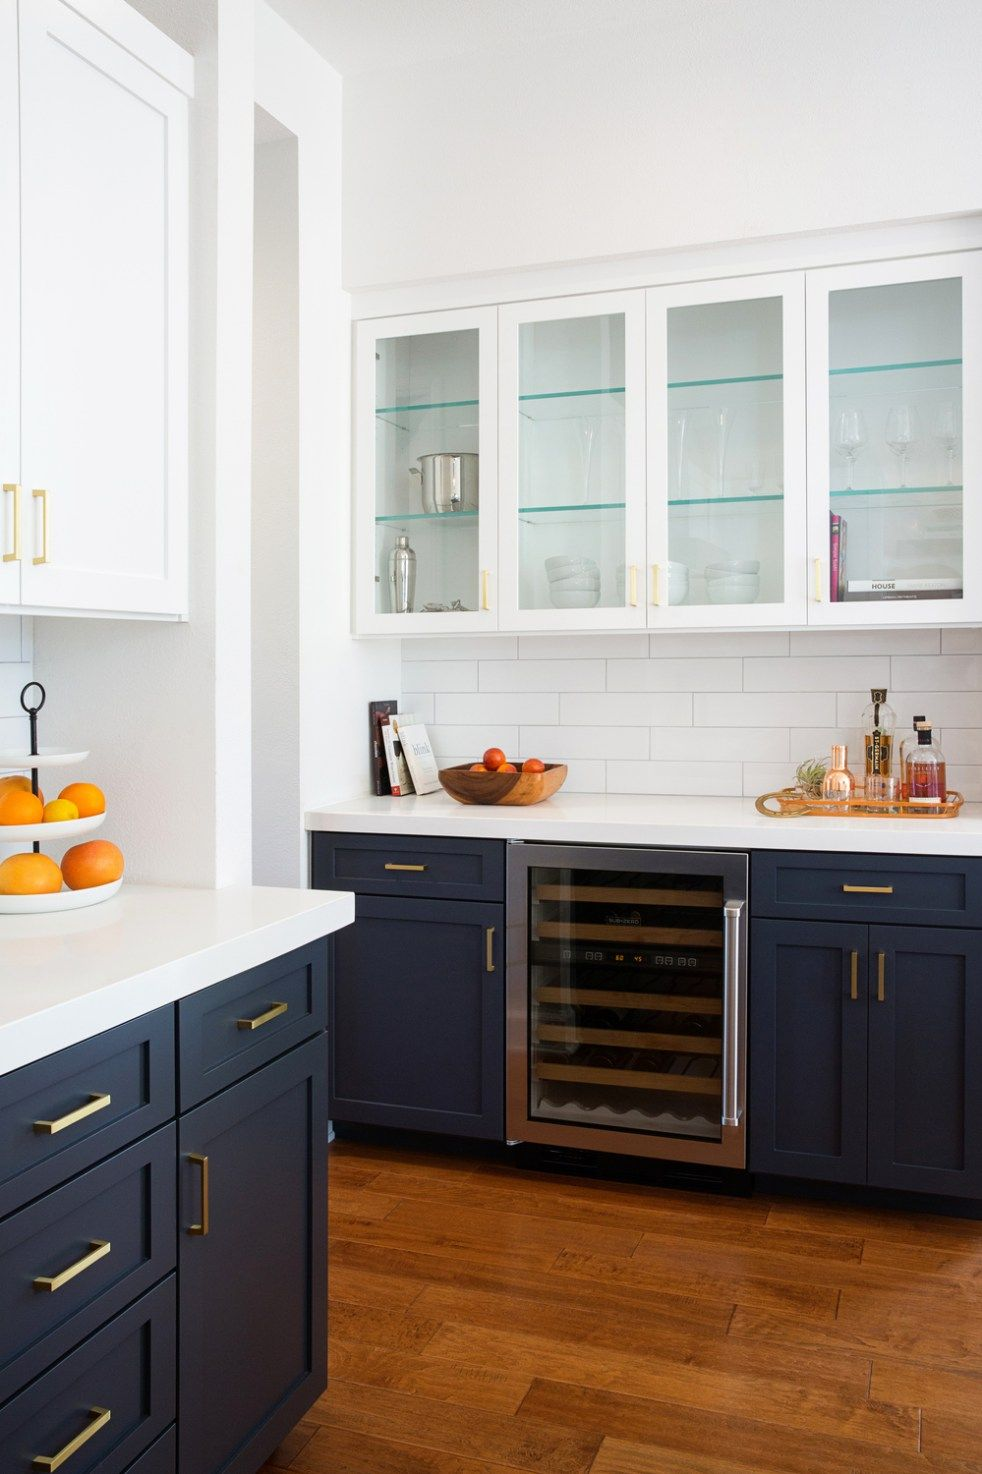 Beautiful Blue Kitchens I Love - jane at home #darkkitchencabinets